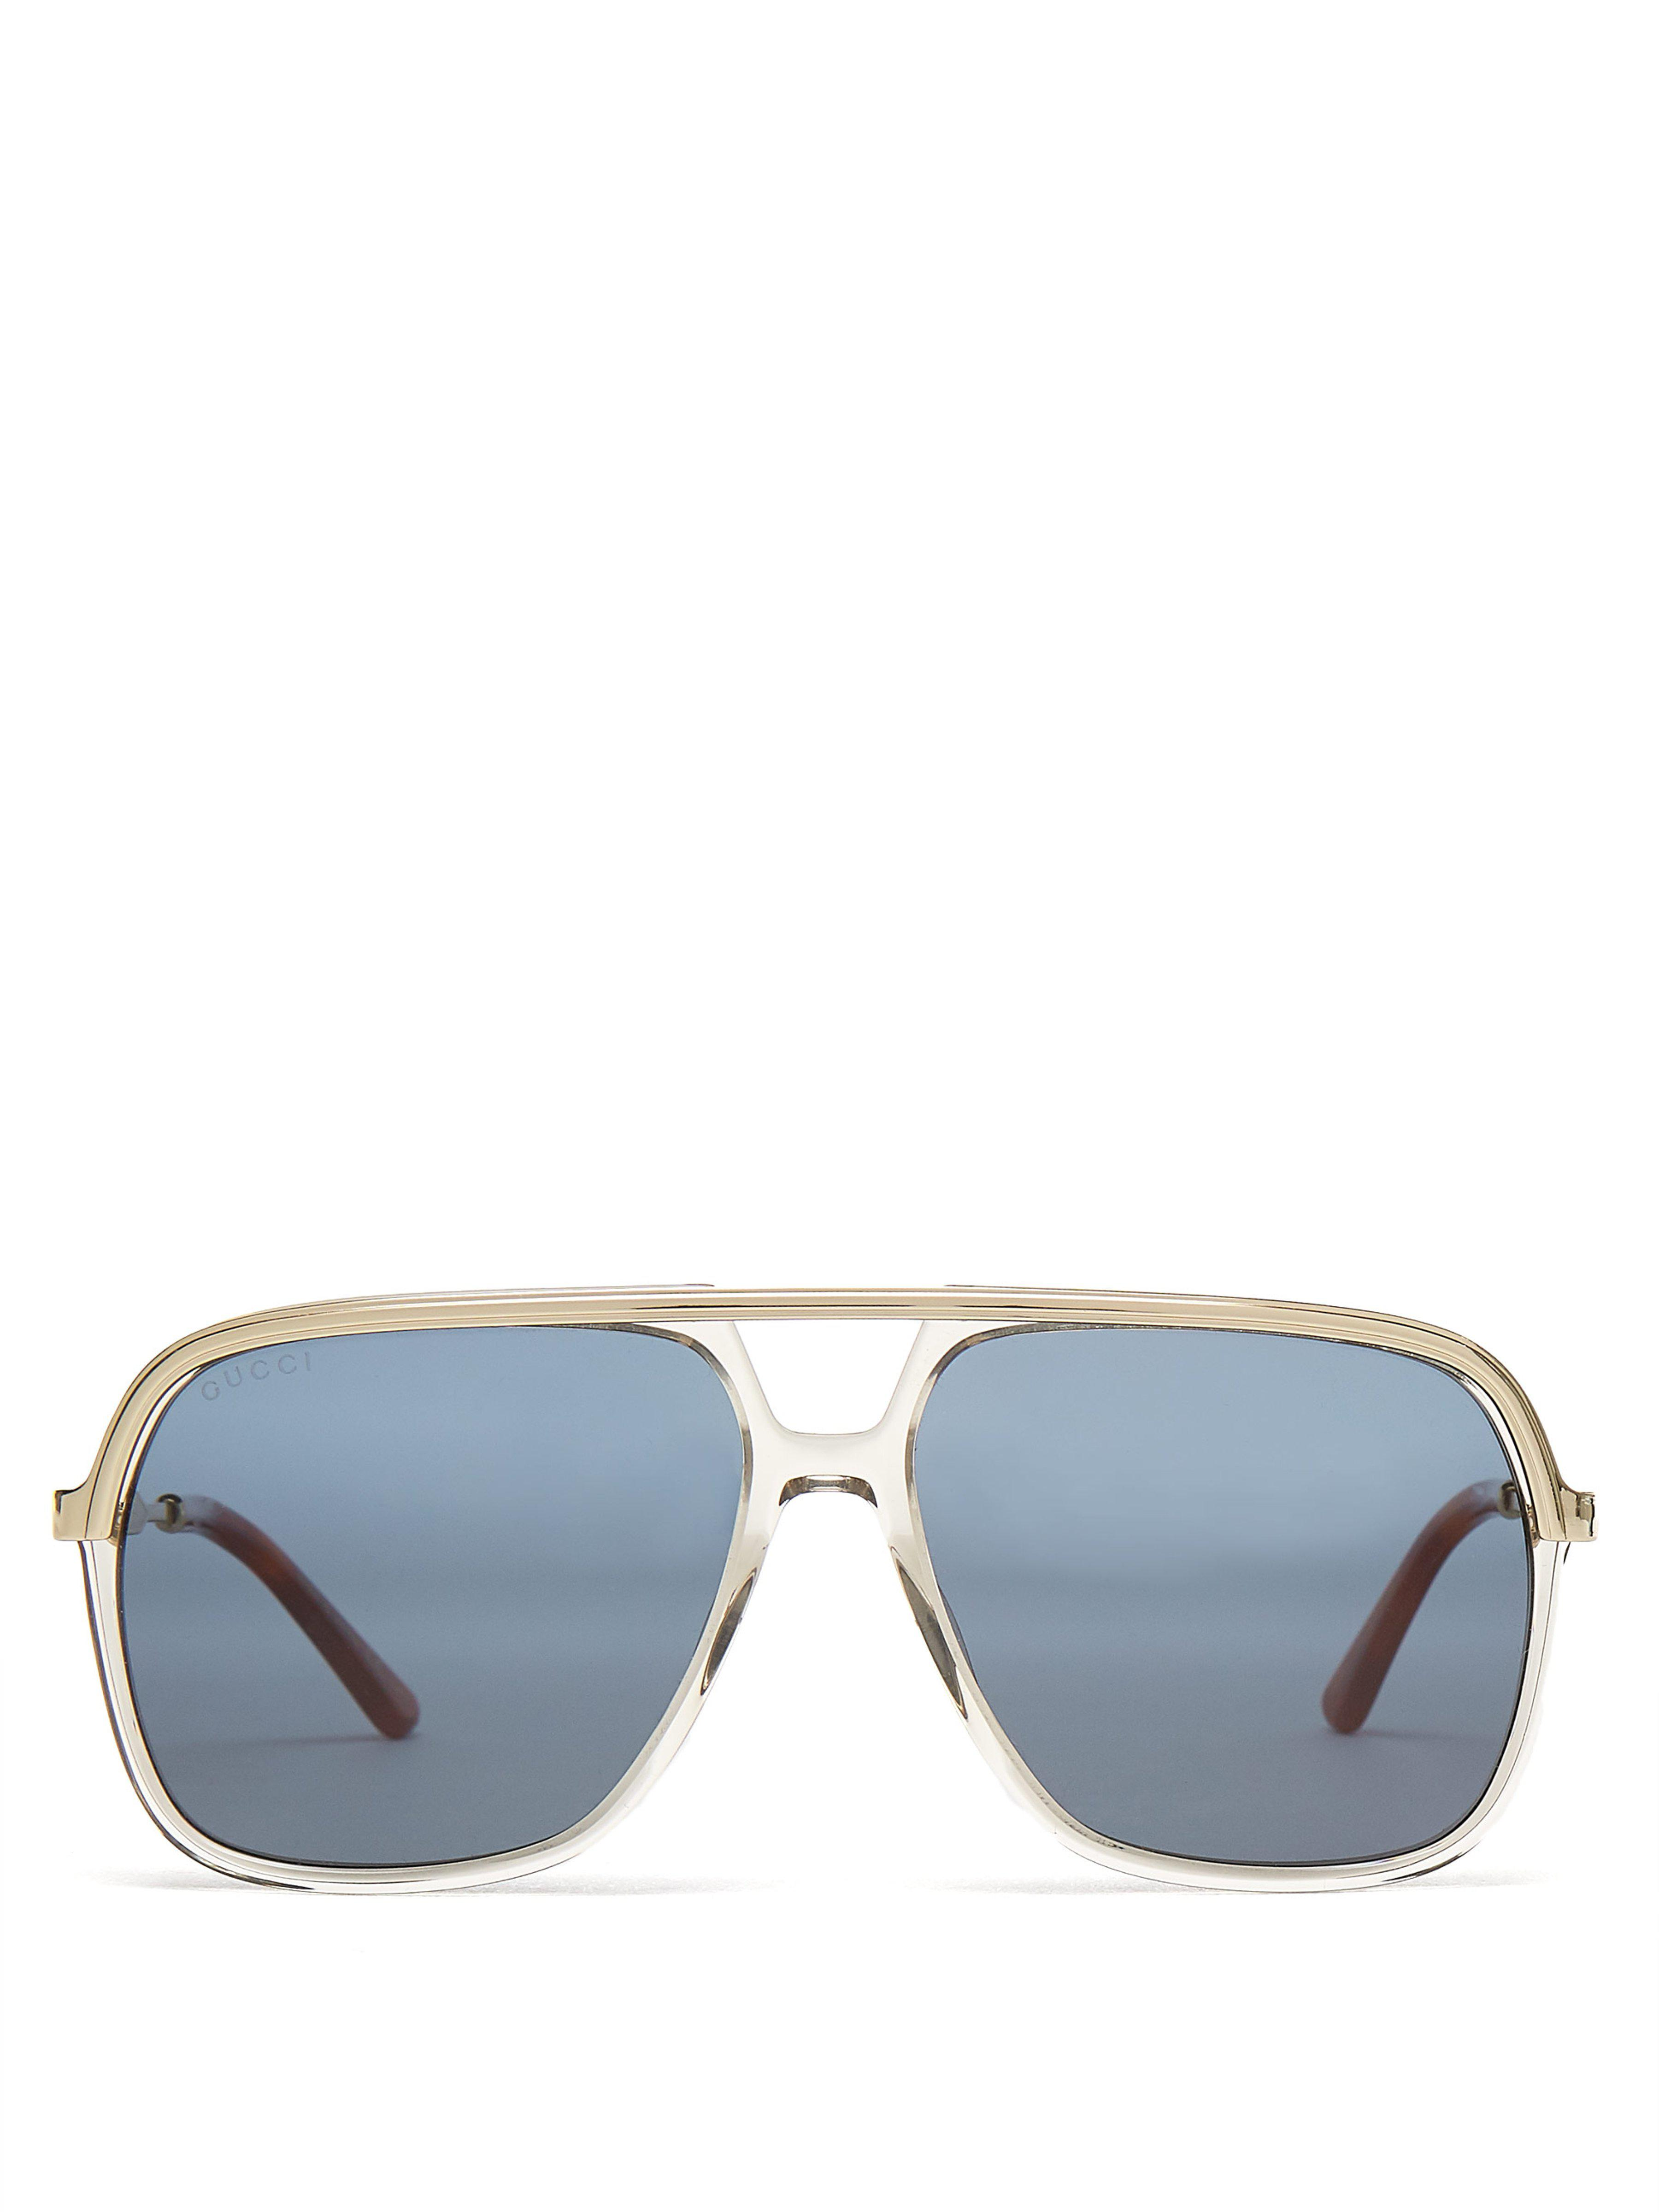 b70c5d4c56d Gucci Rectangular Frame Acetate And Metal Sunglasses in Brown for ...